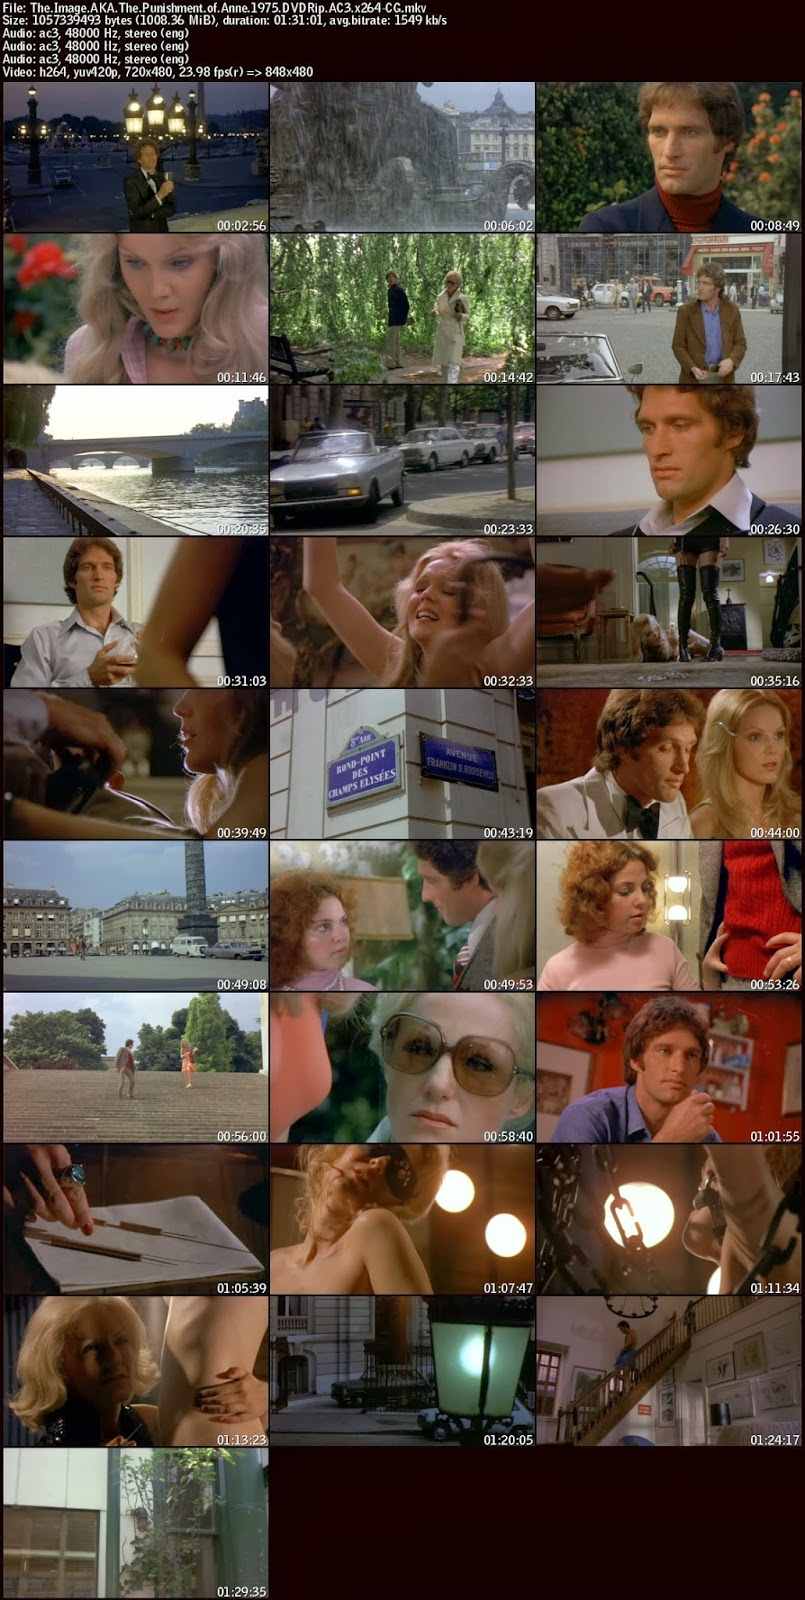 the image 1975 movie online